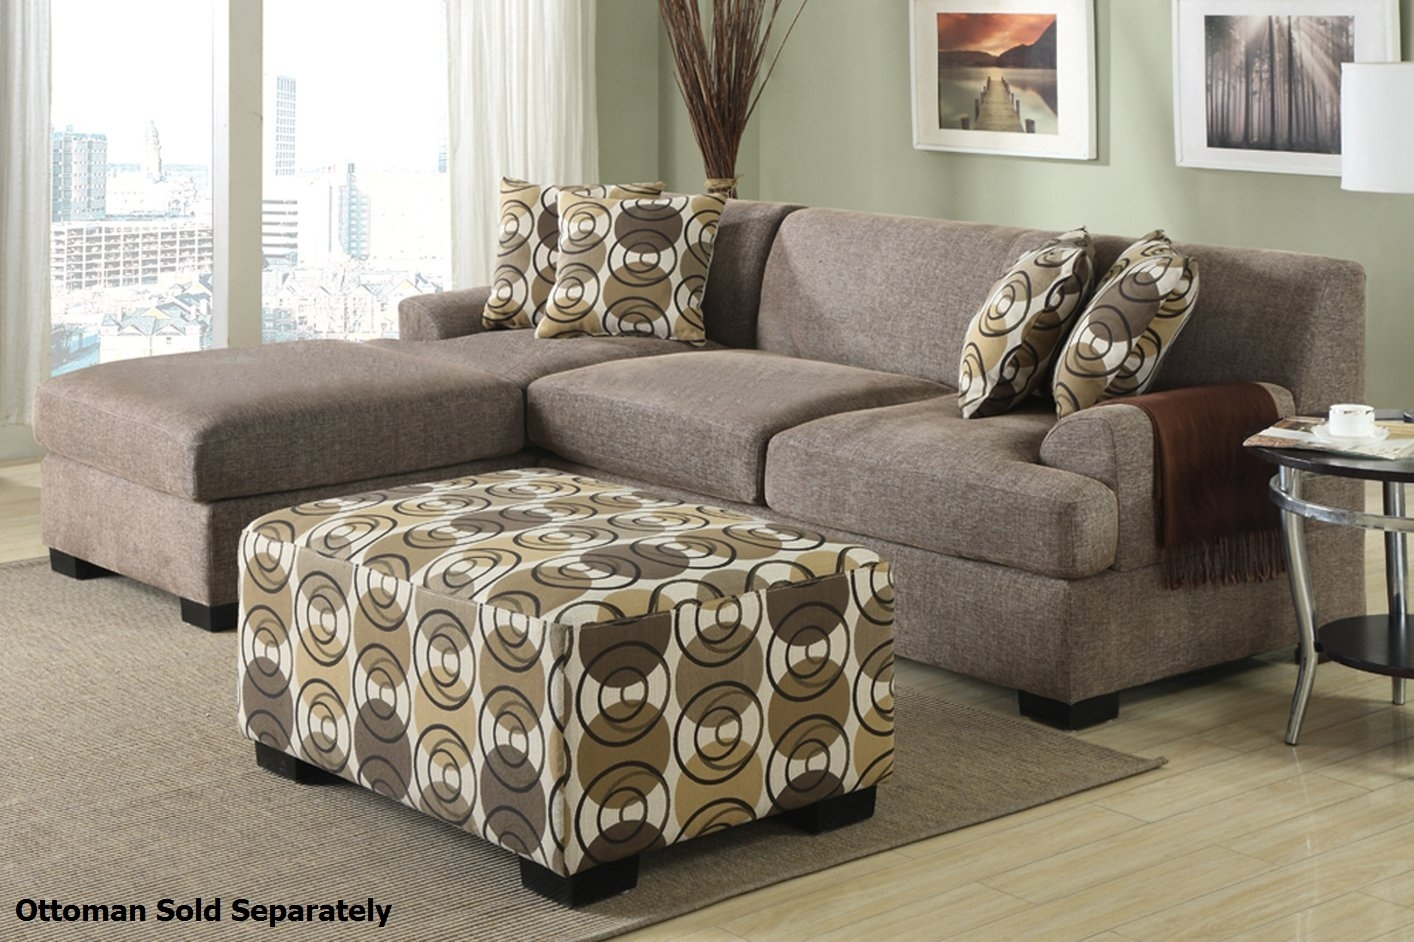 montreal sectional sofa fairmont cooper dillards 10 collection of sofas ideas